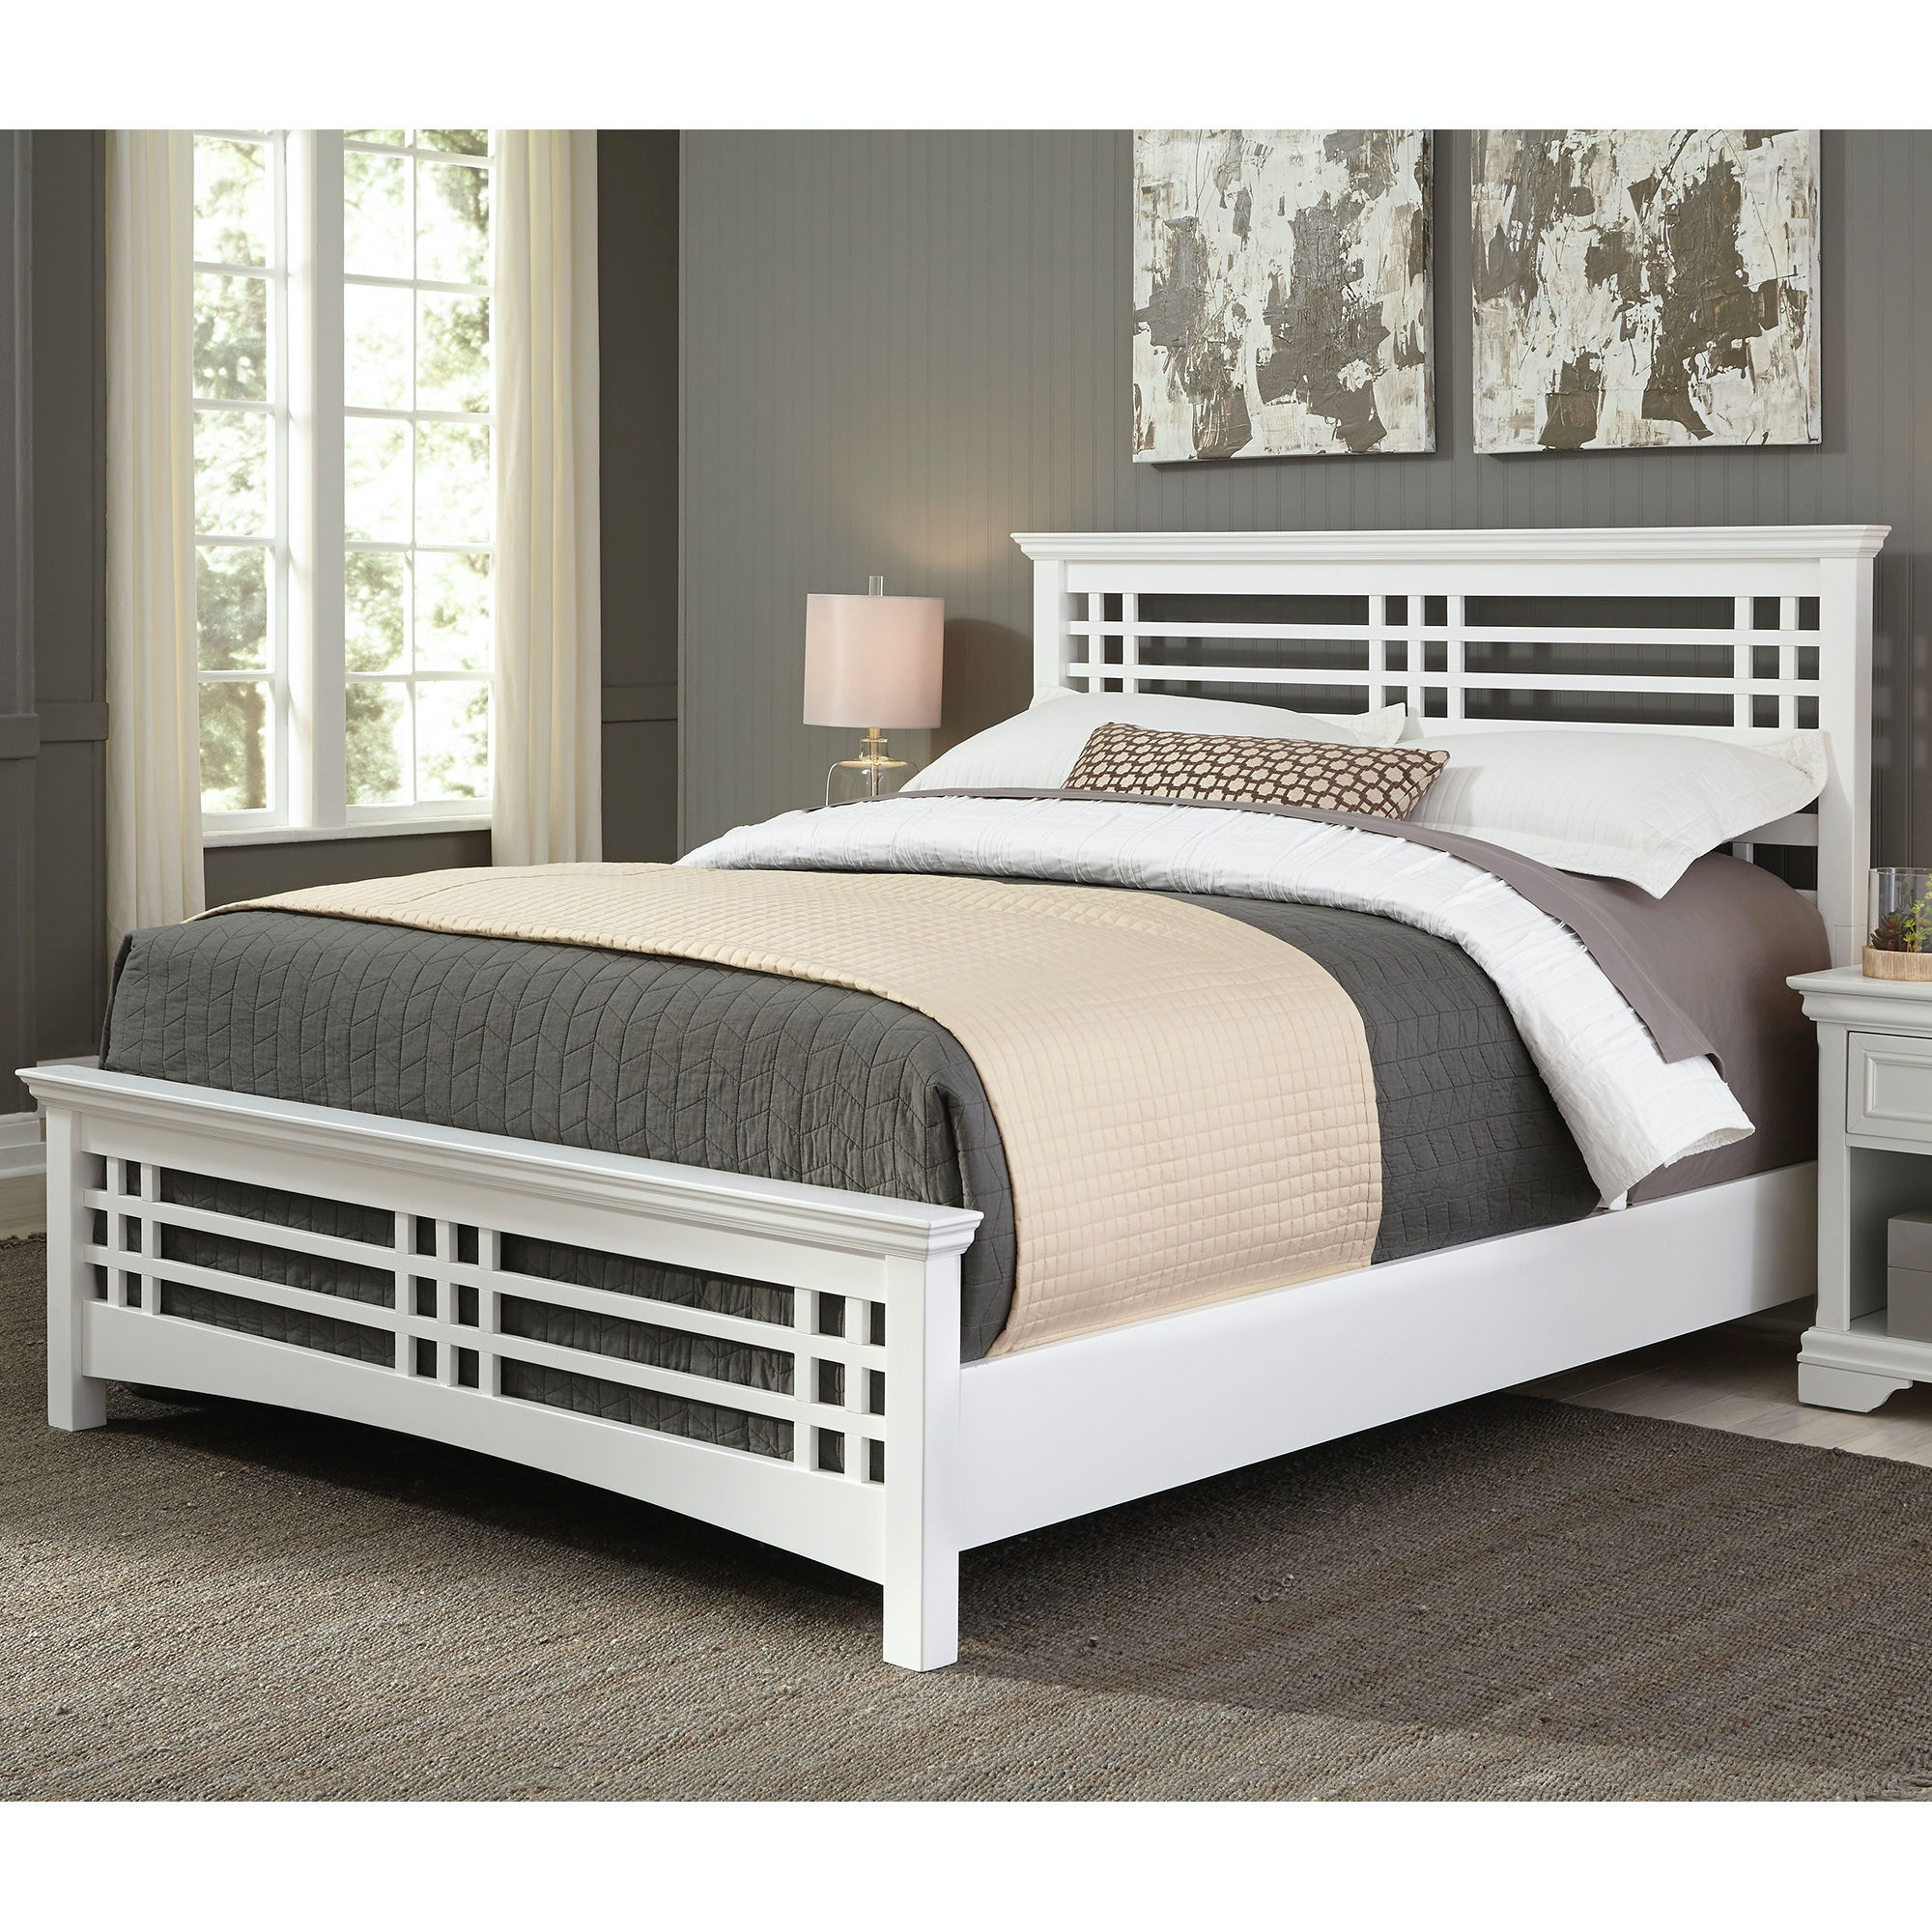 Exceptional Fashion Bed Group Avery Complete Bed With Wood Frame And Mission Style  Design, Cottage White